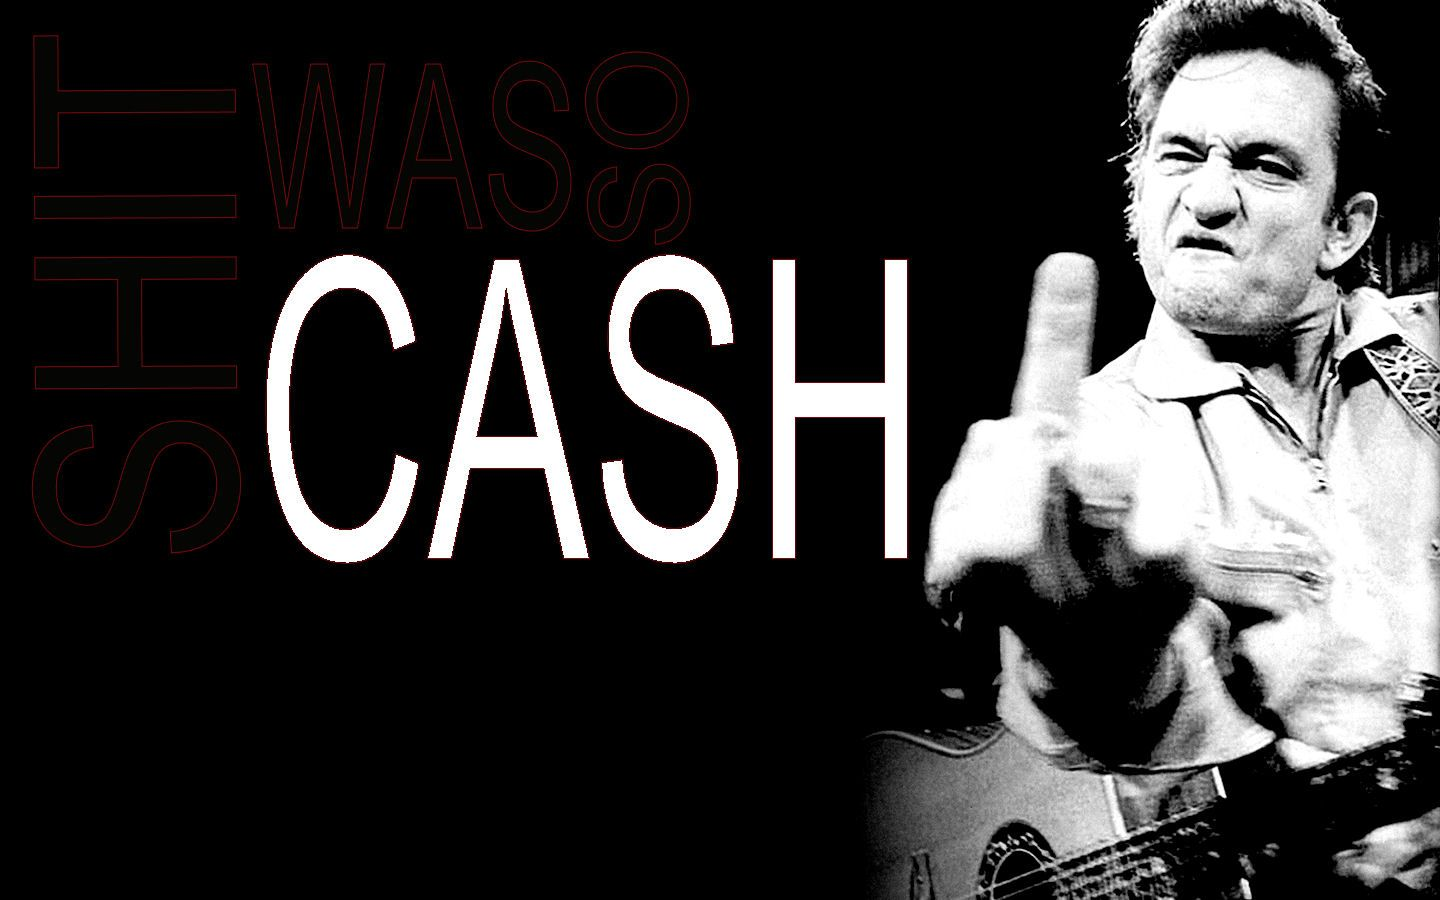 Johnny Cash Wallpaper Hd Wallpapers Backgrounds Of Your Choice Music Documentaries Johnny Cash Good Music